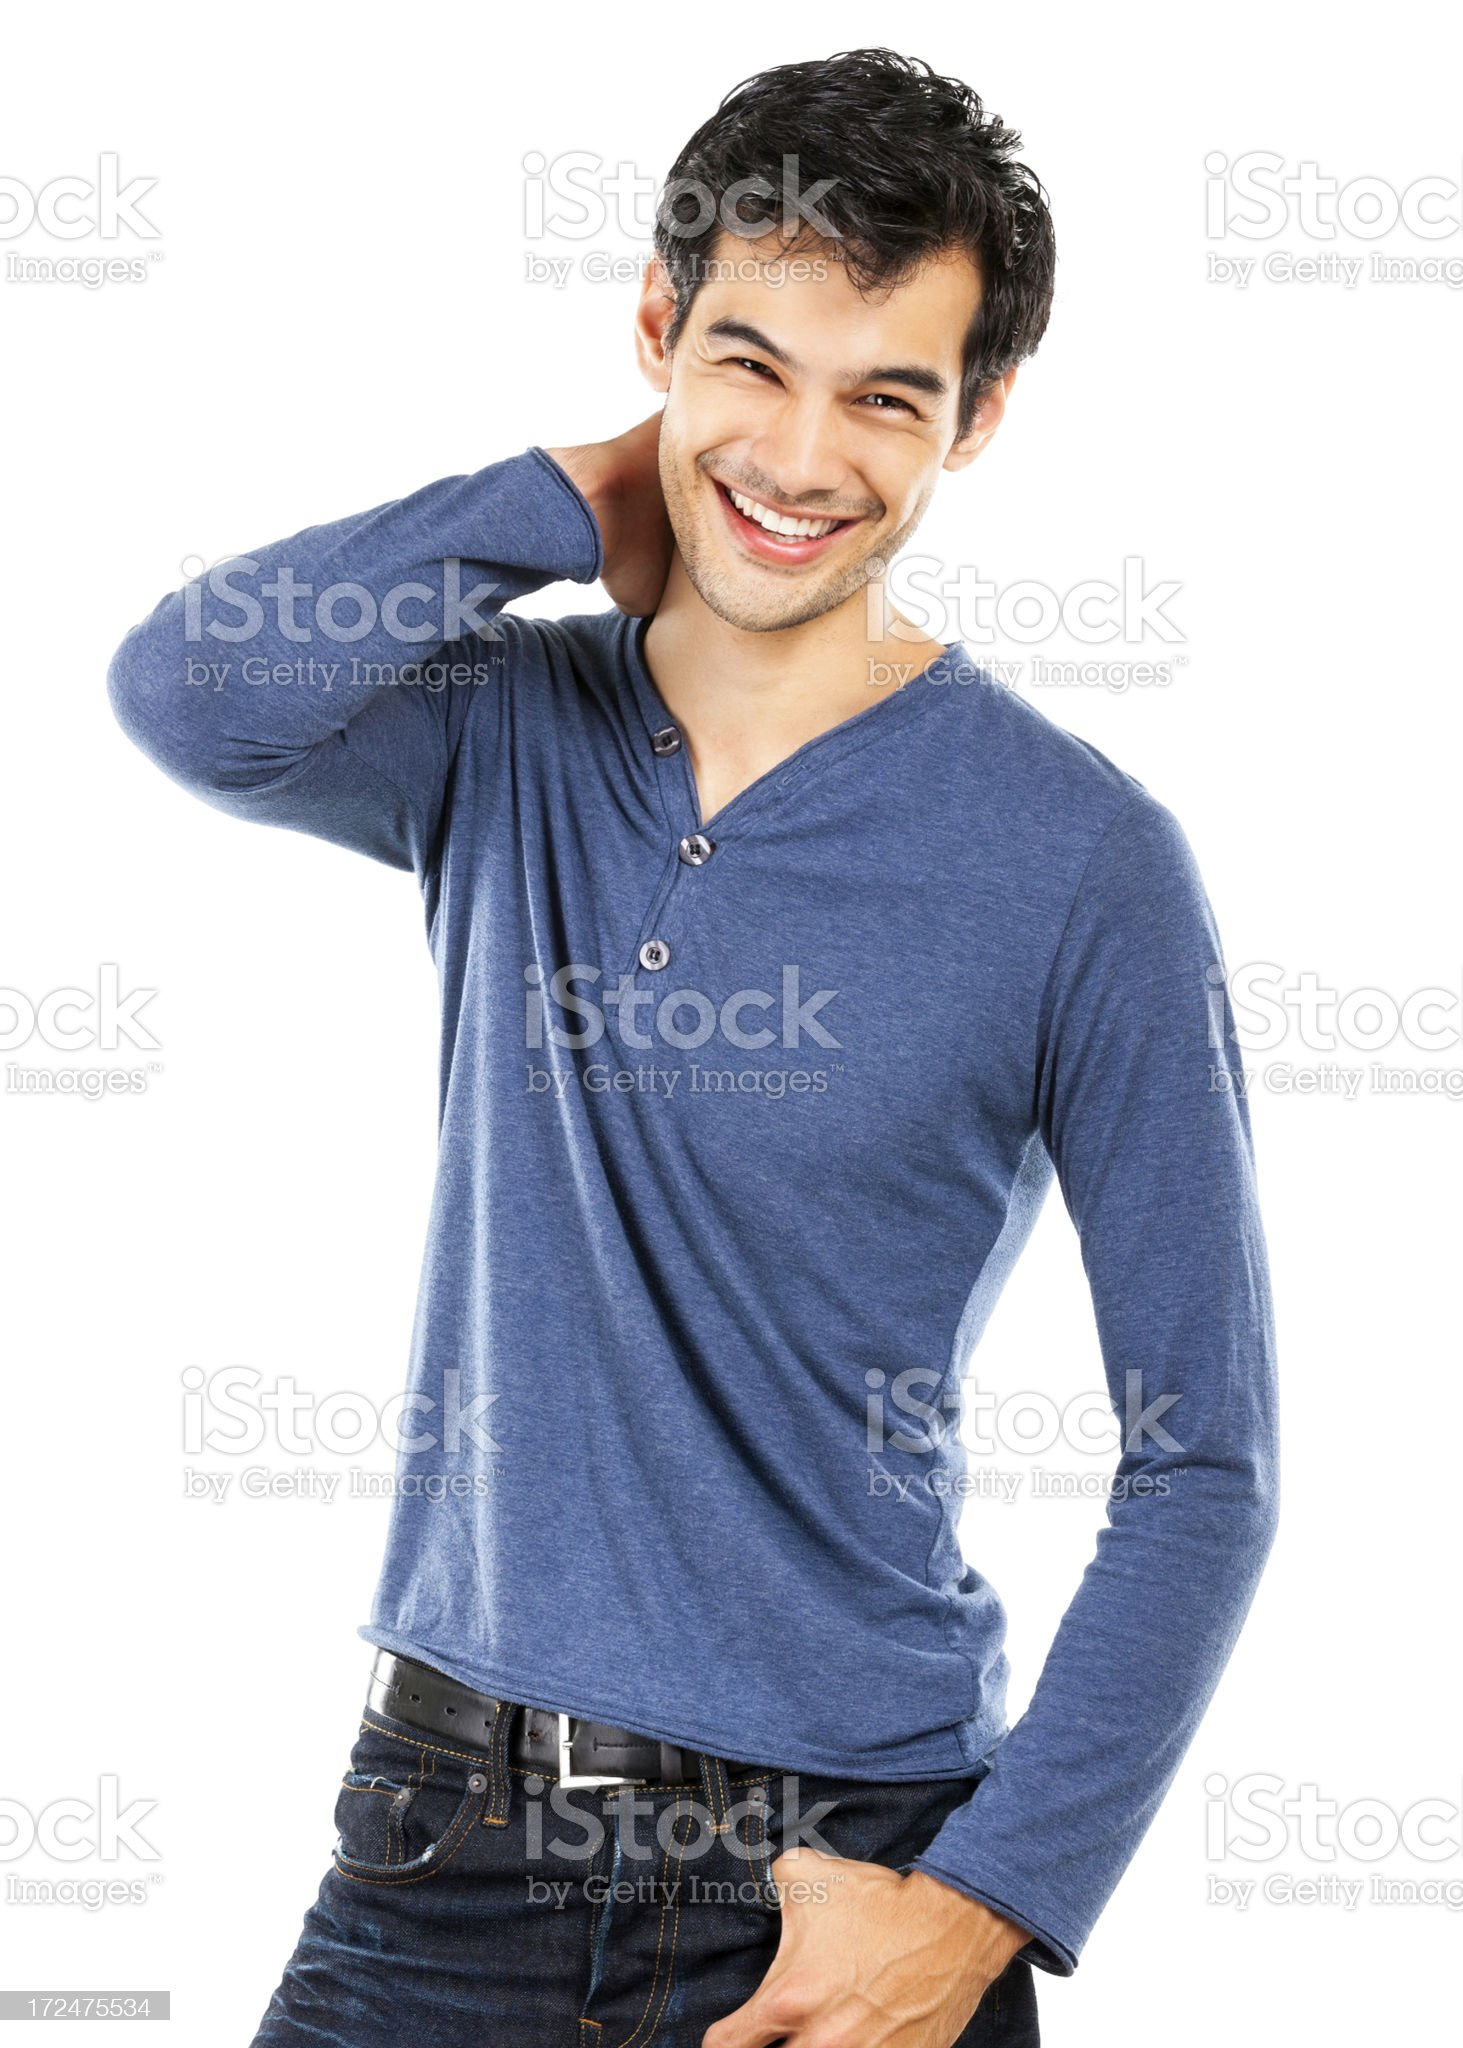 Casual Young Man Smiling (Isolated on White) royalty-free stock photo